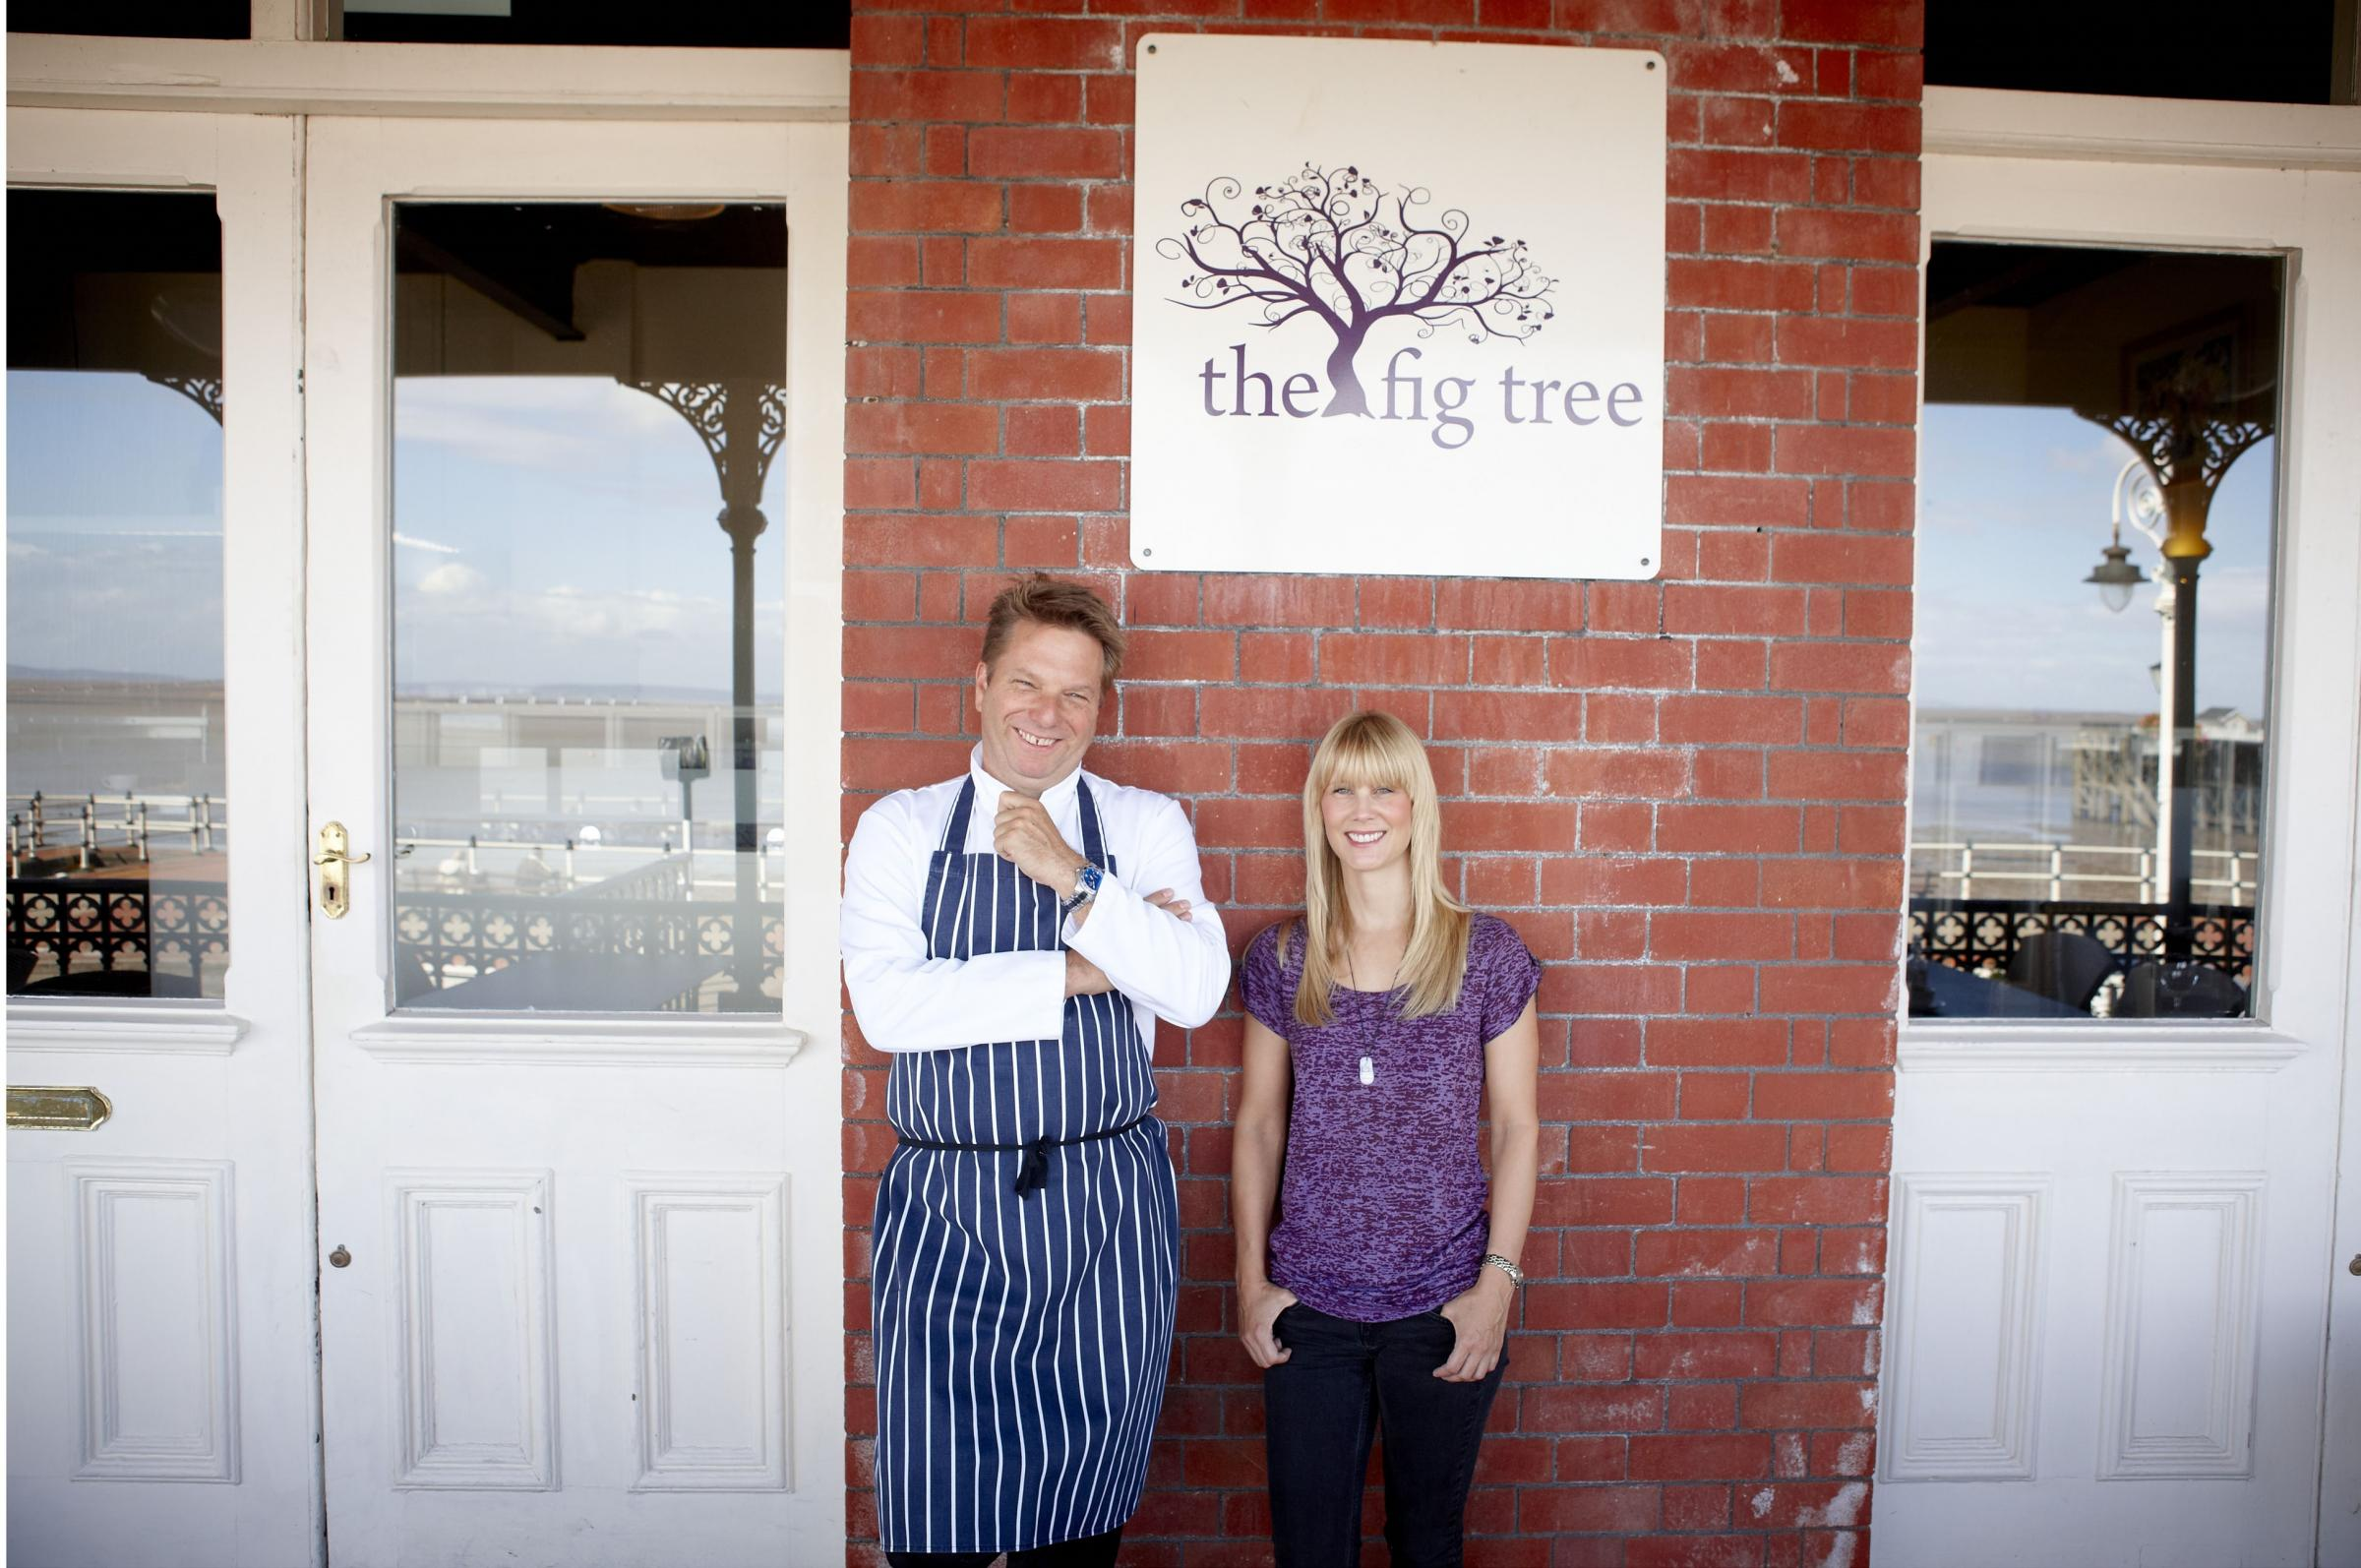 Mike Caplan-Hill and Sandra Guppy outside The Fig Tree